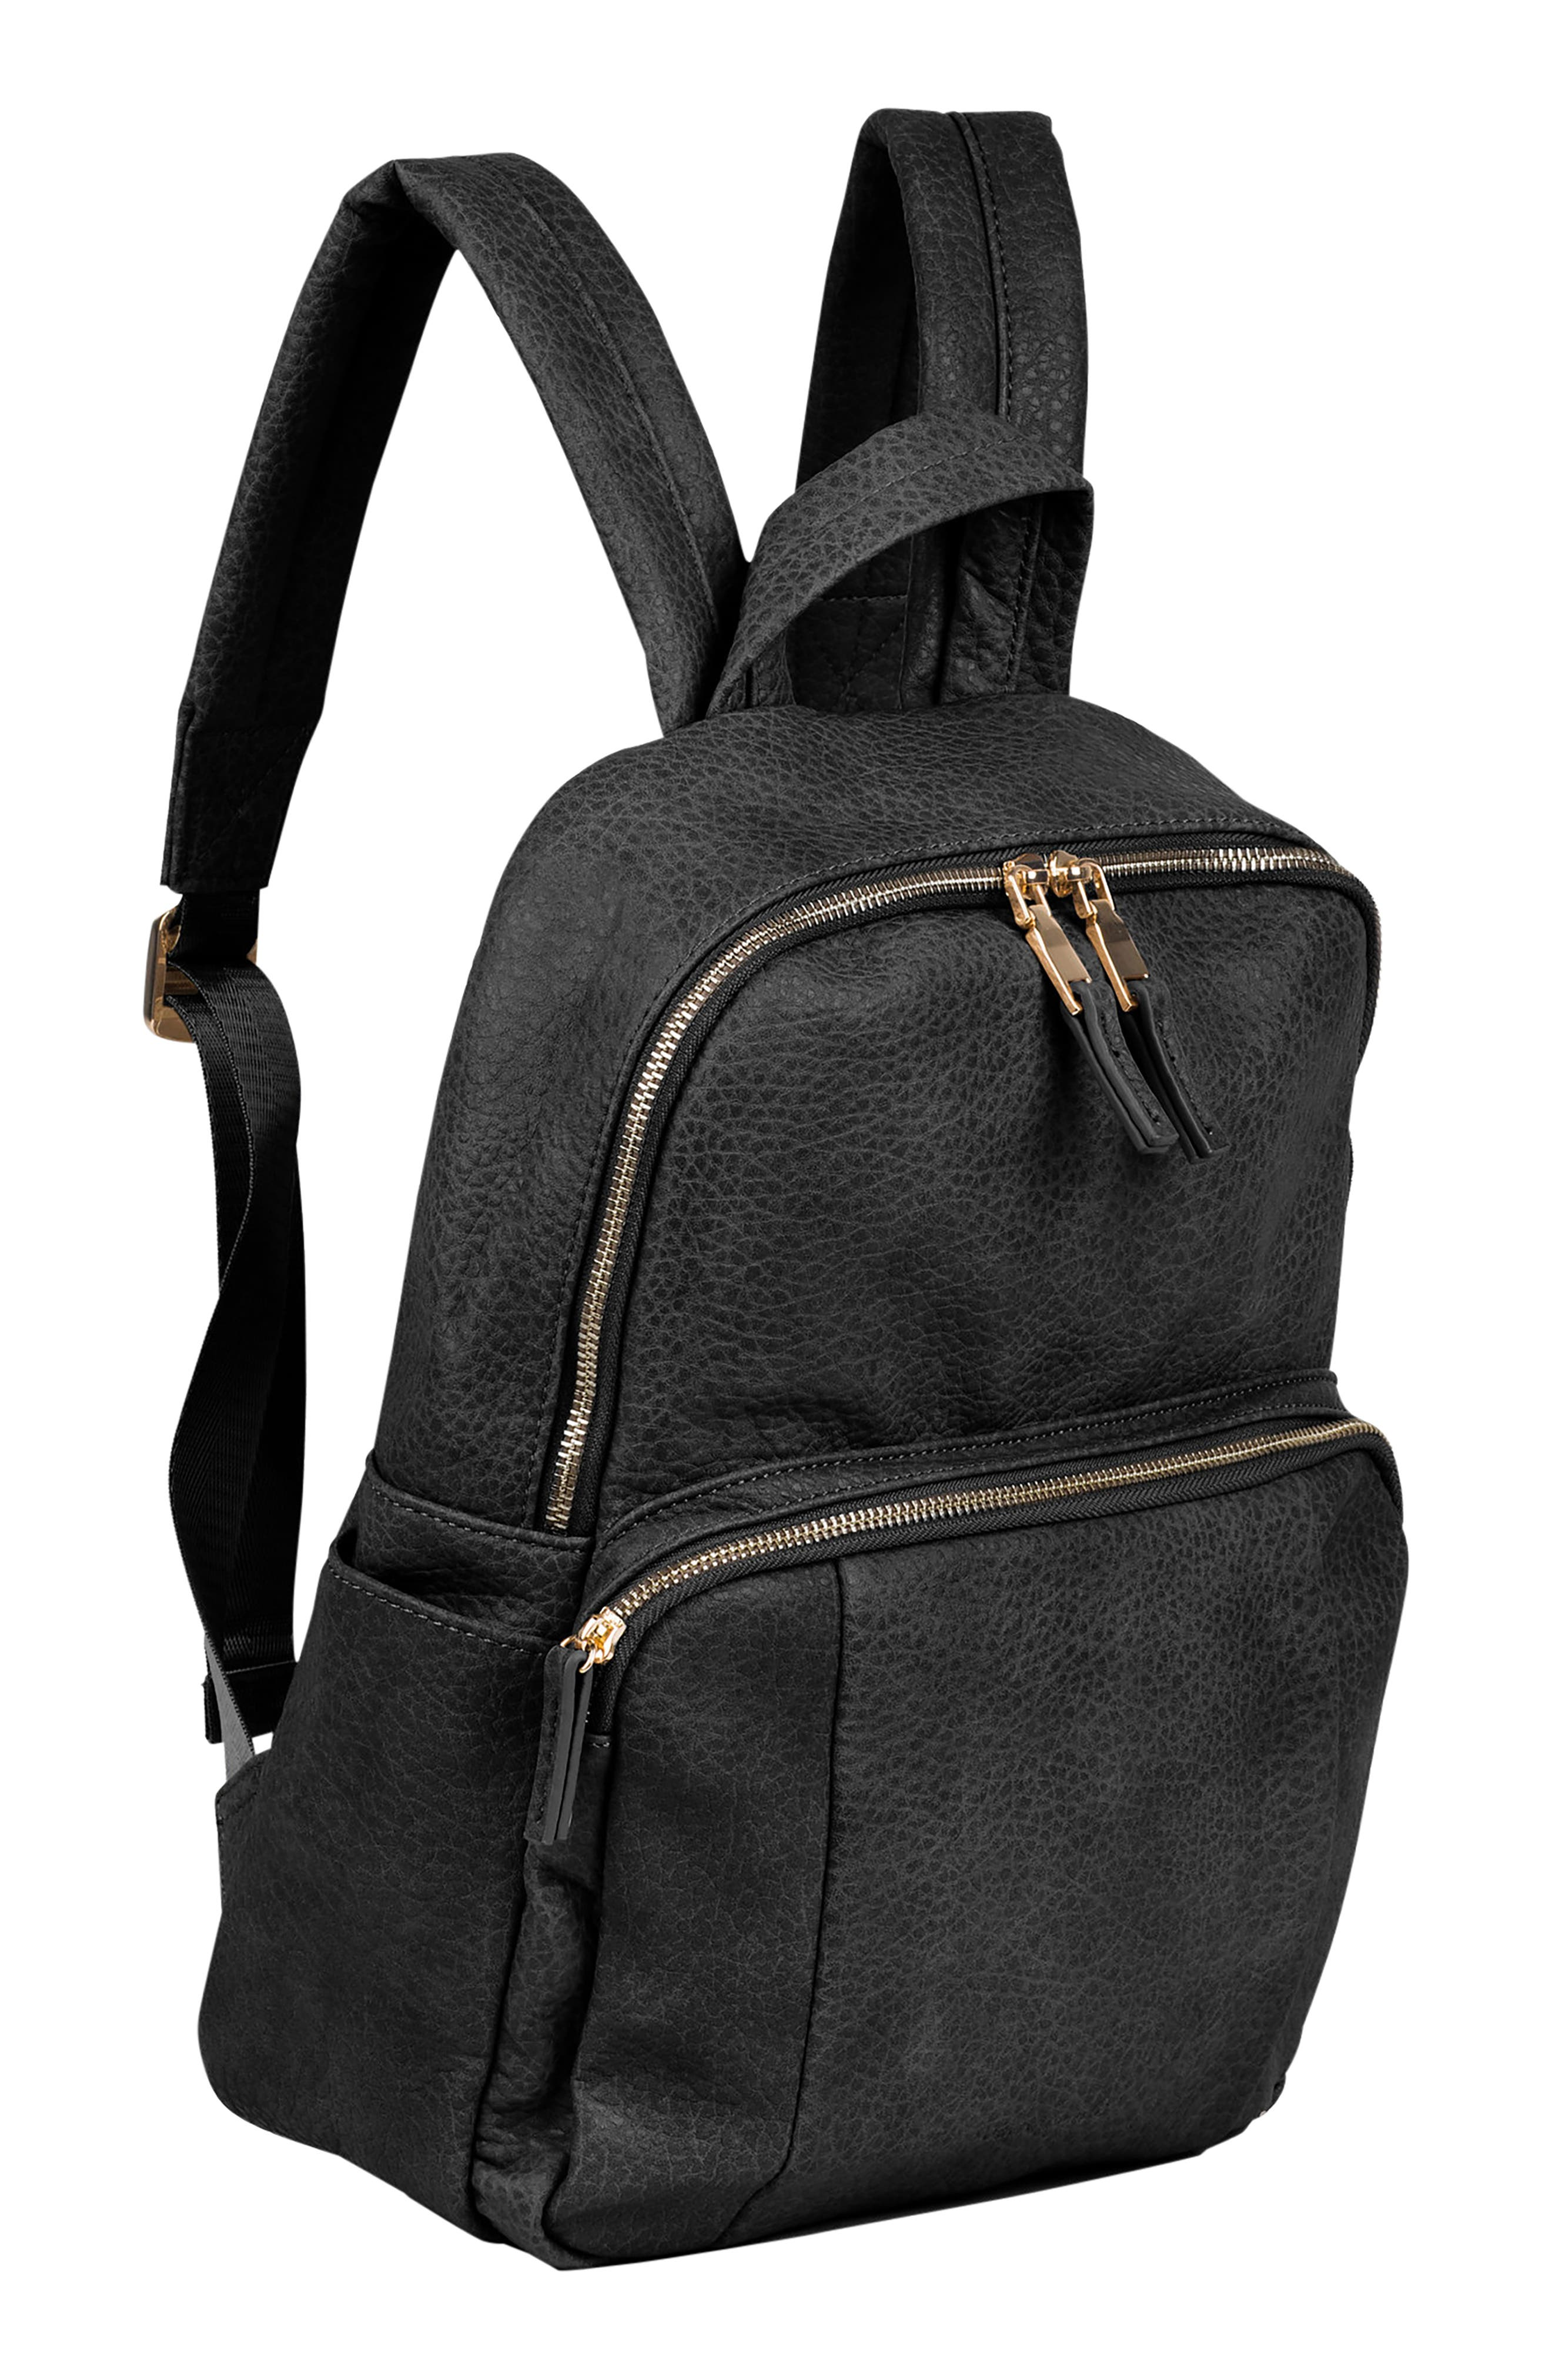 URBAN ORIGINALS,                             Bold Move Vegan Leather Laptop Backpack,                             Alternate thumbnail 4, color,                             BLACK